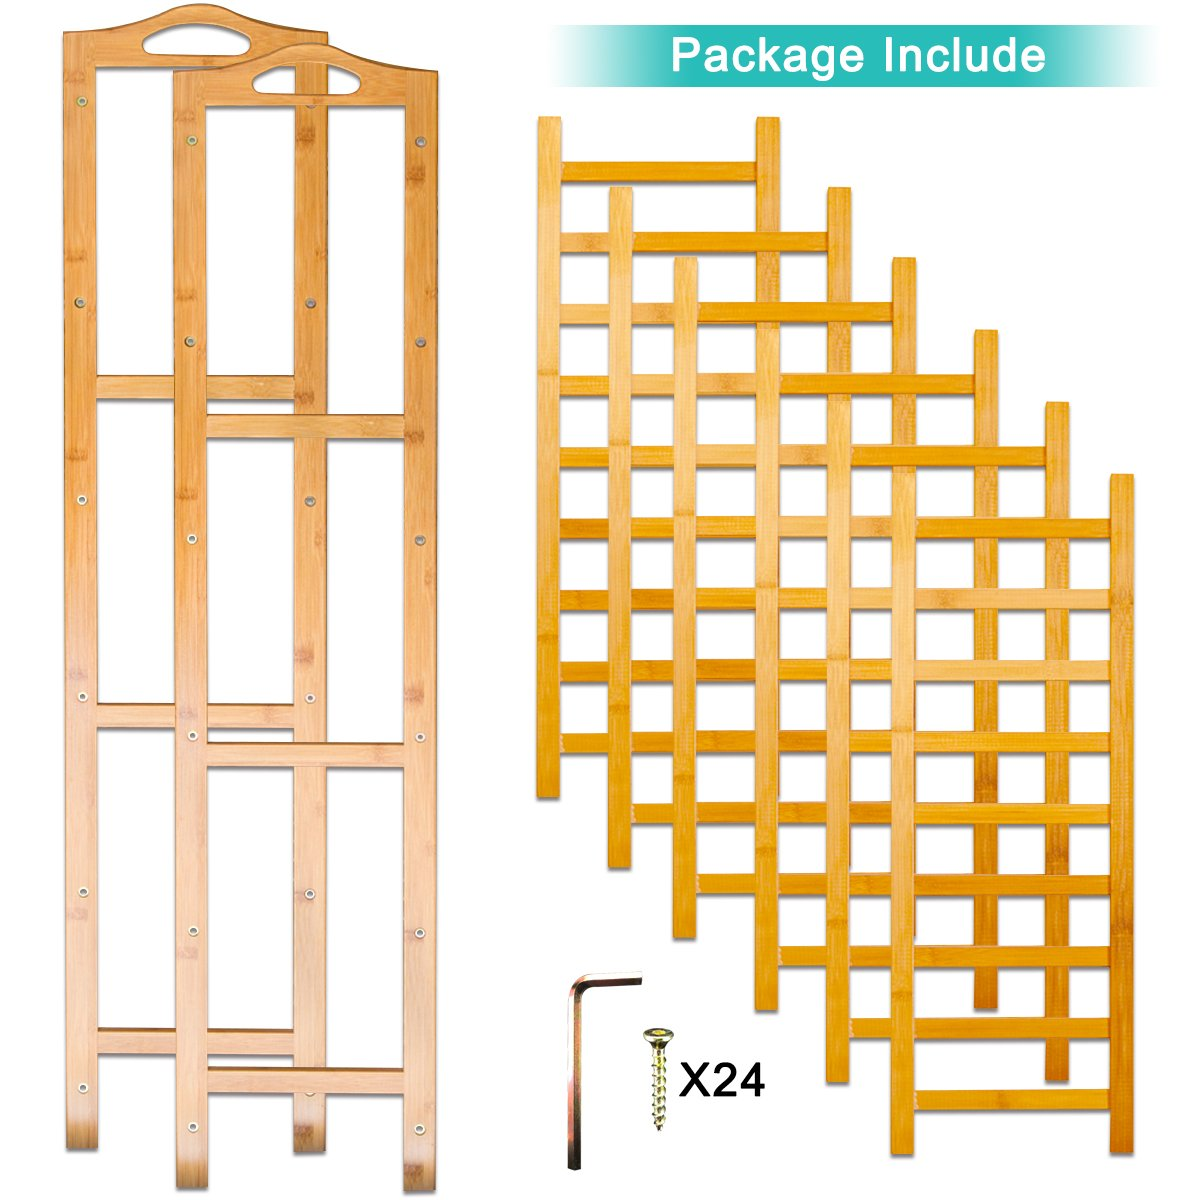 ANKO Bamboo Shoe Rack, 100% Natural Bamboo Thickened 6-Tier Mesh Utility Entryway Shoe Shelf Storage Organizer Suitable for Entryway, Closet, Living Room, Bedroom. (1 PACK) by ANKO (Image #5)